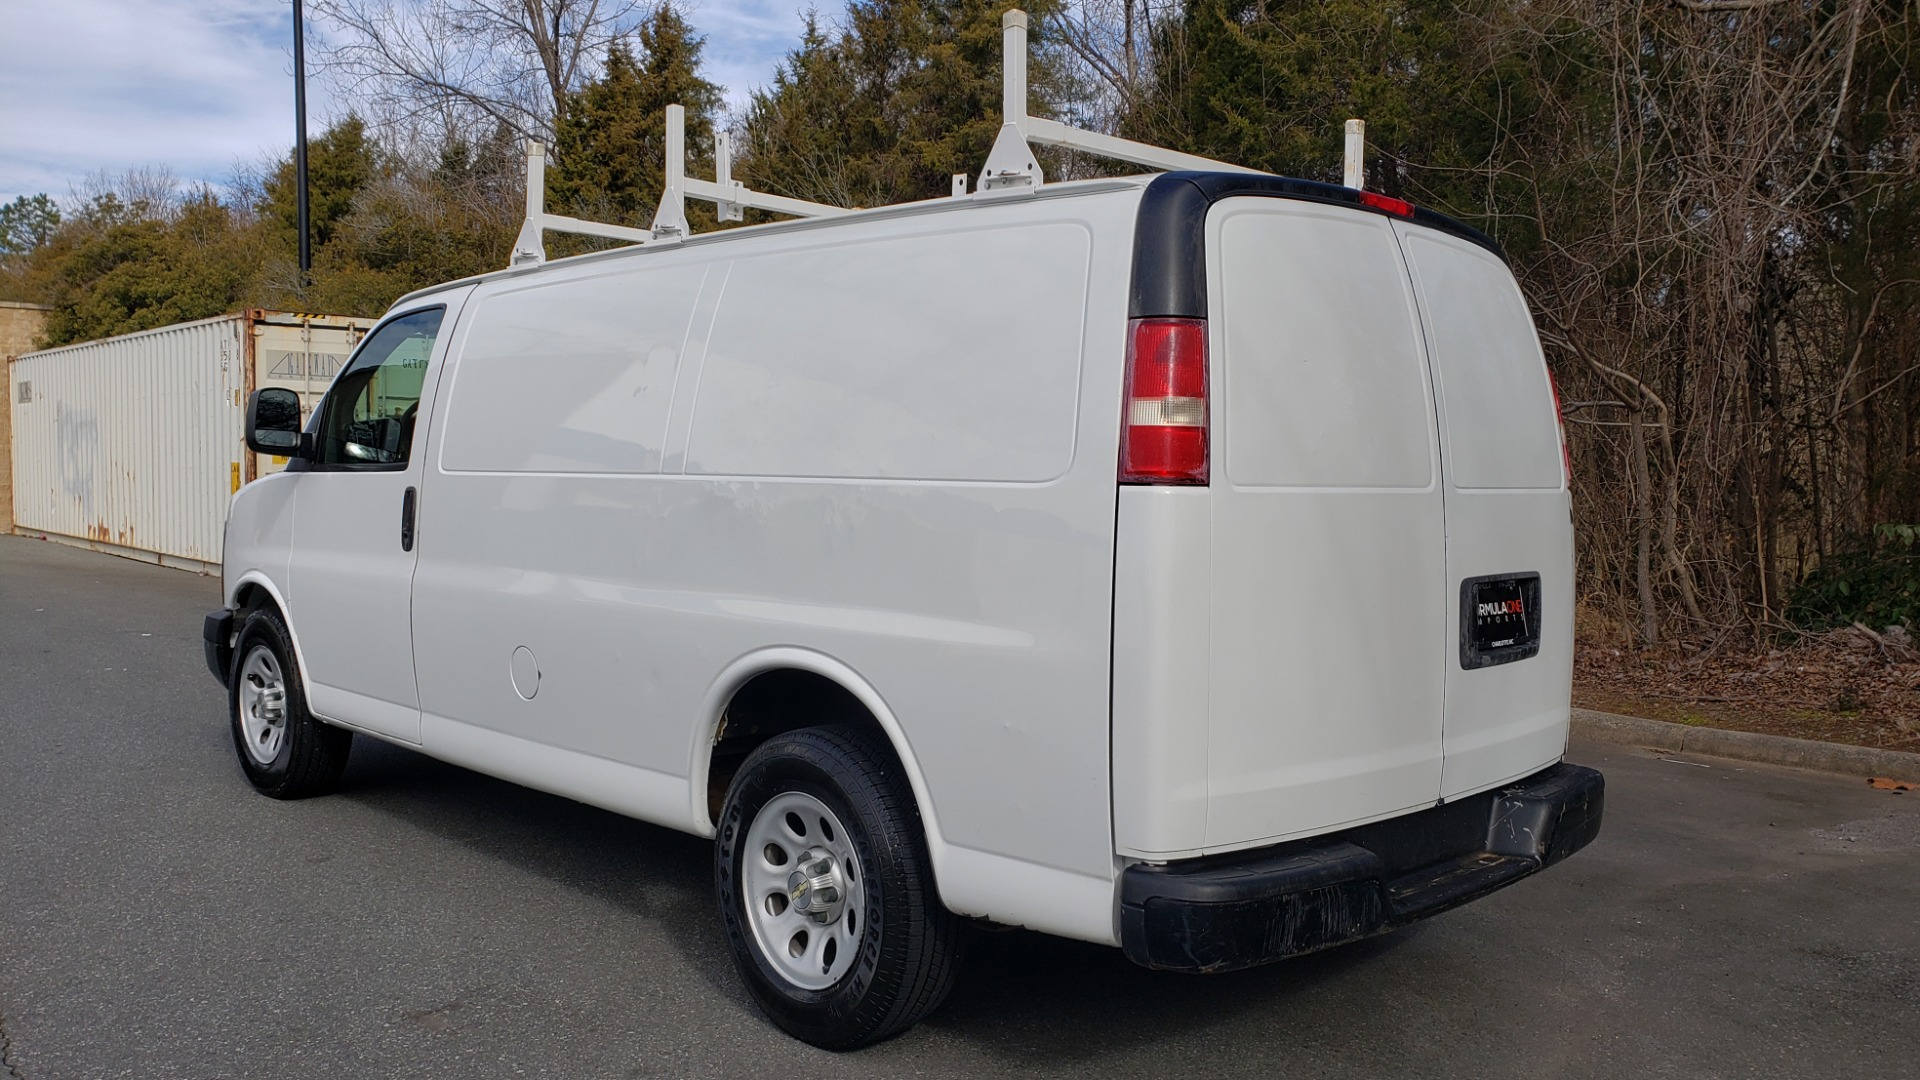 Used 2012 Chevrolet EXPRESS CARGO VAN 1500 / 135 WB / 4.3L V6 / 4-SPD AUTO / ROOF RACK for sale $10,995 at Formula Imports in Charlotte NC 28227 3